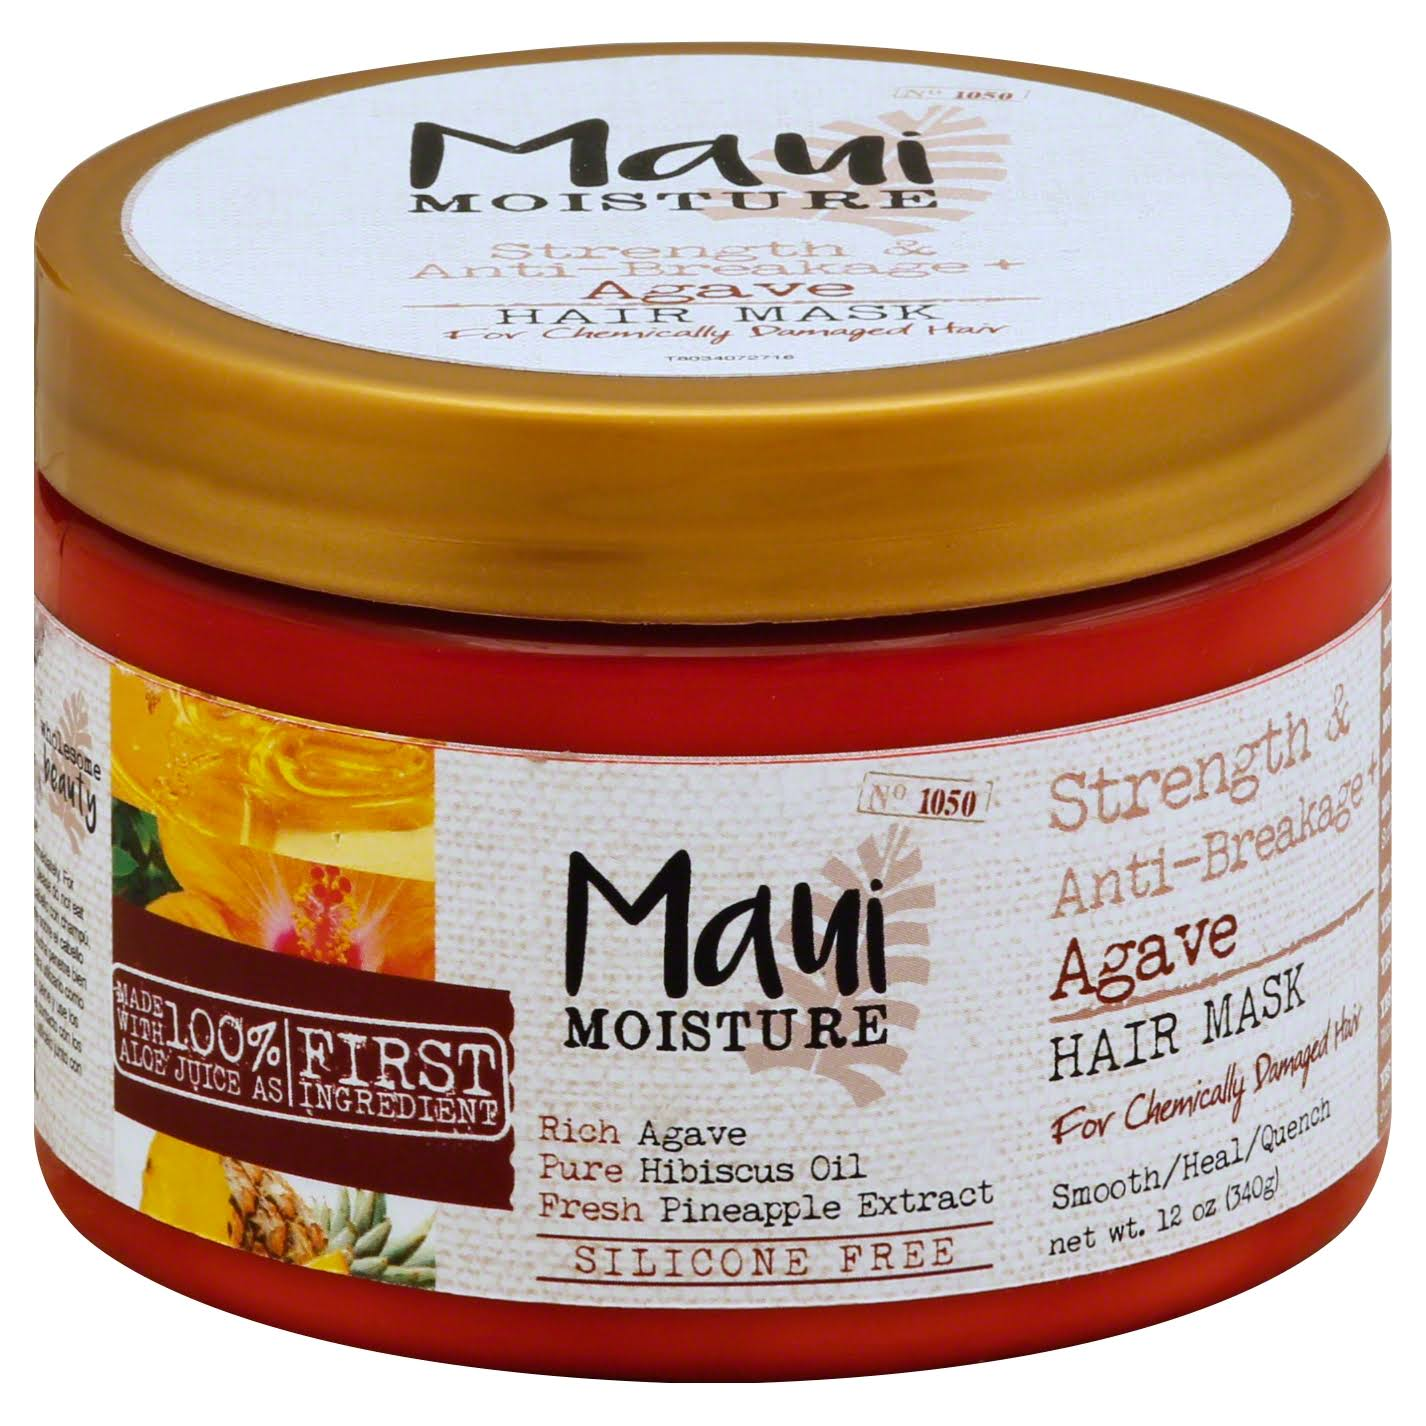 Maui Moisture Strength and Anti-Breakage Agave Hair Mask - 12oz